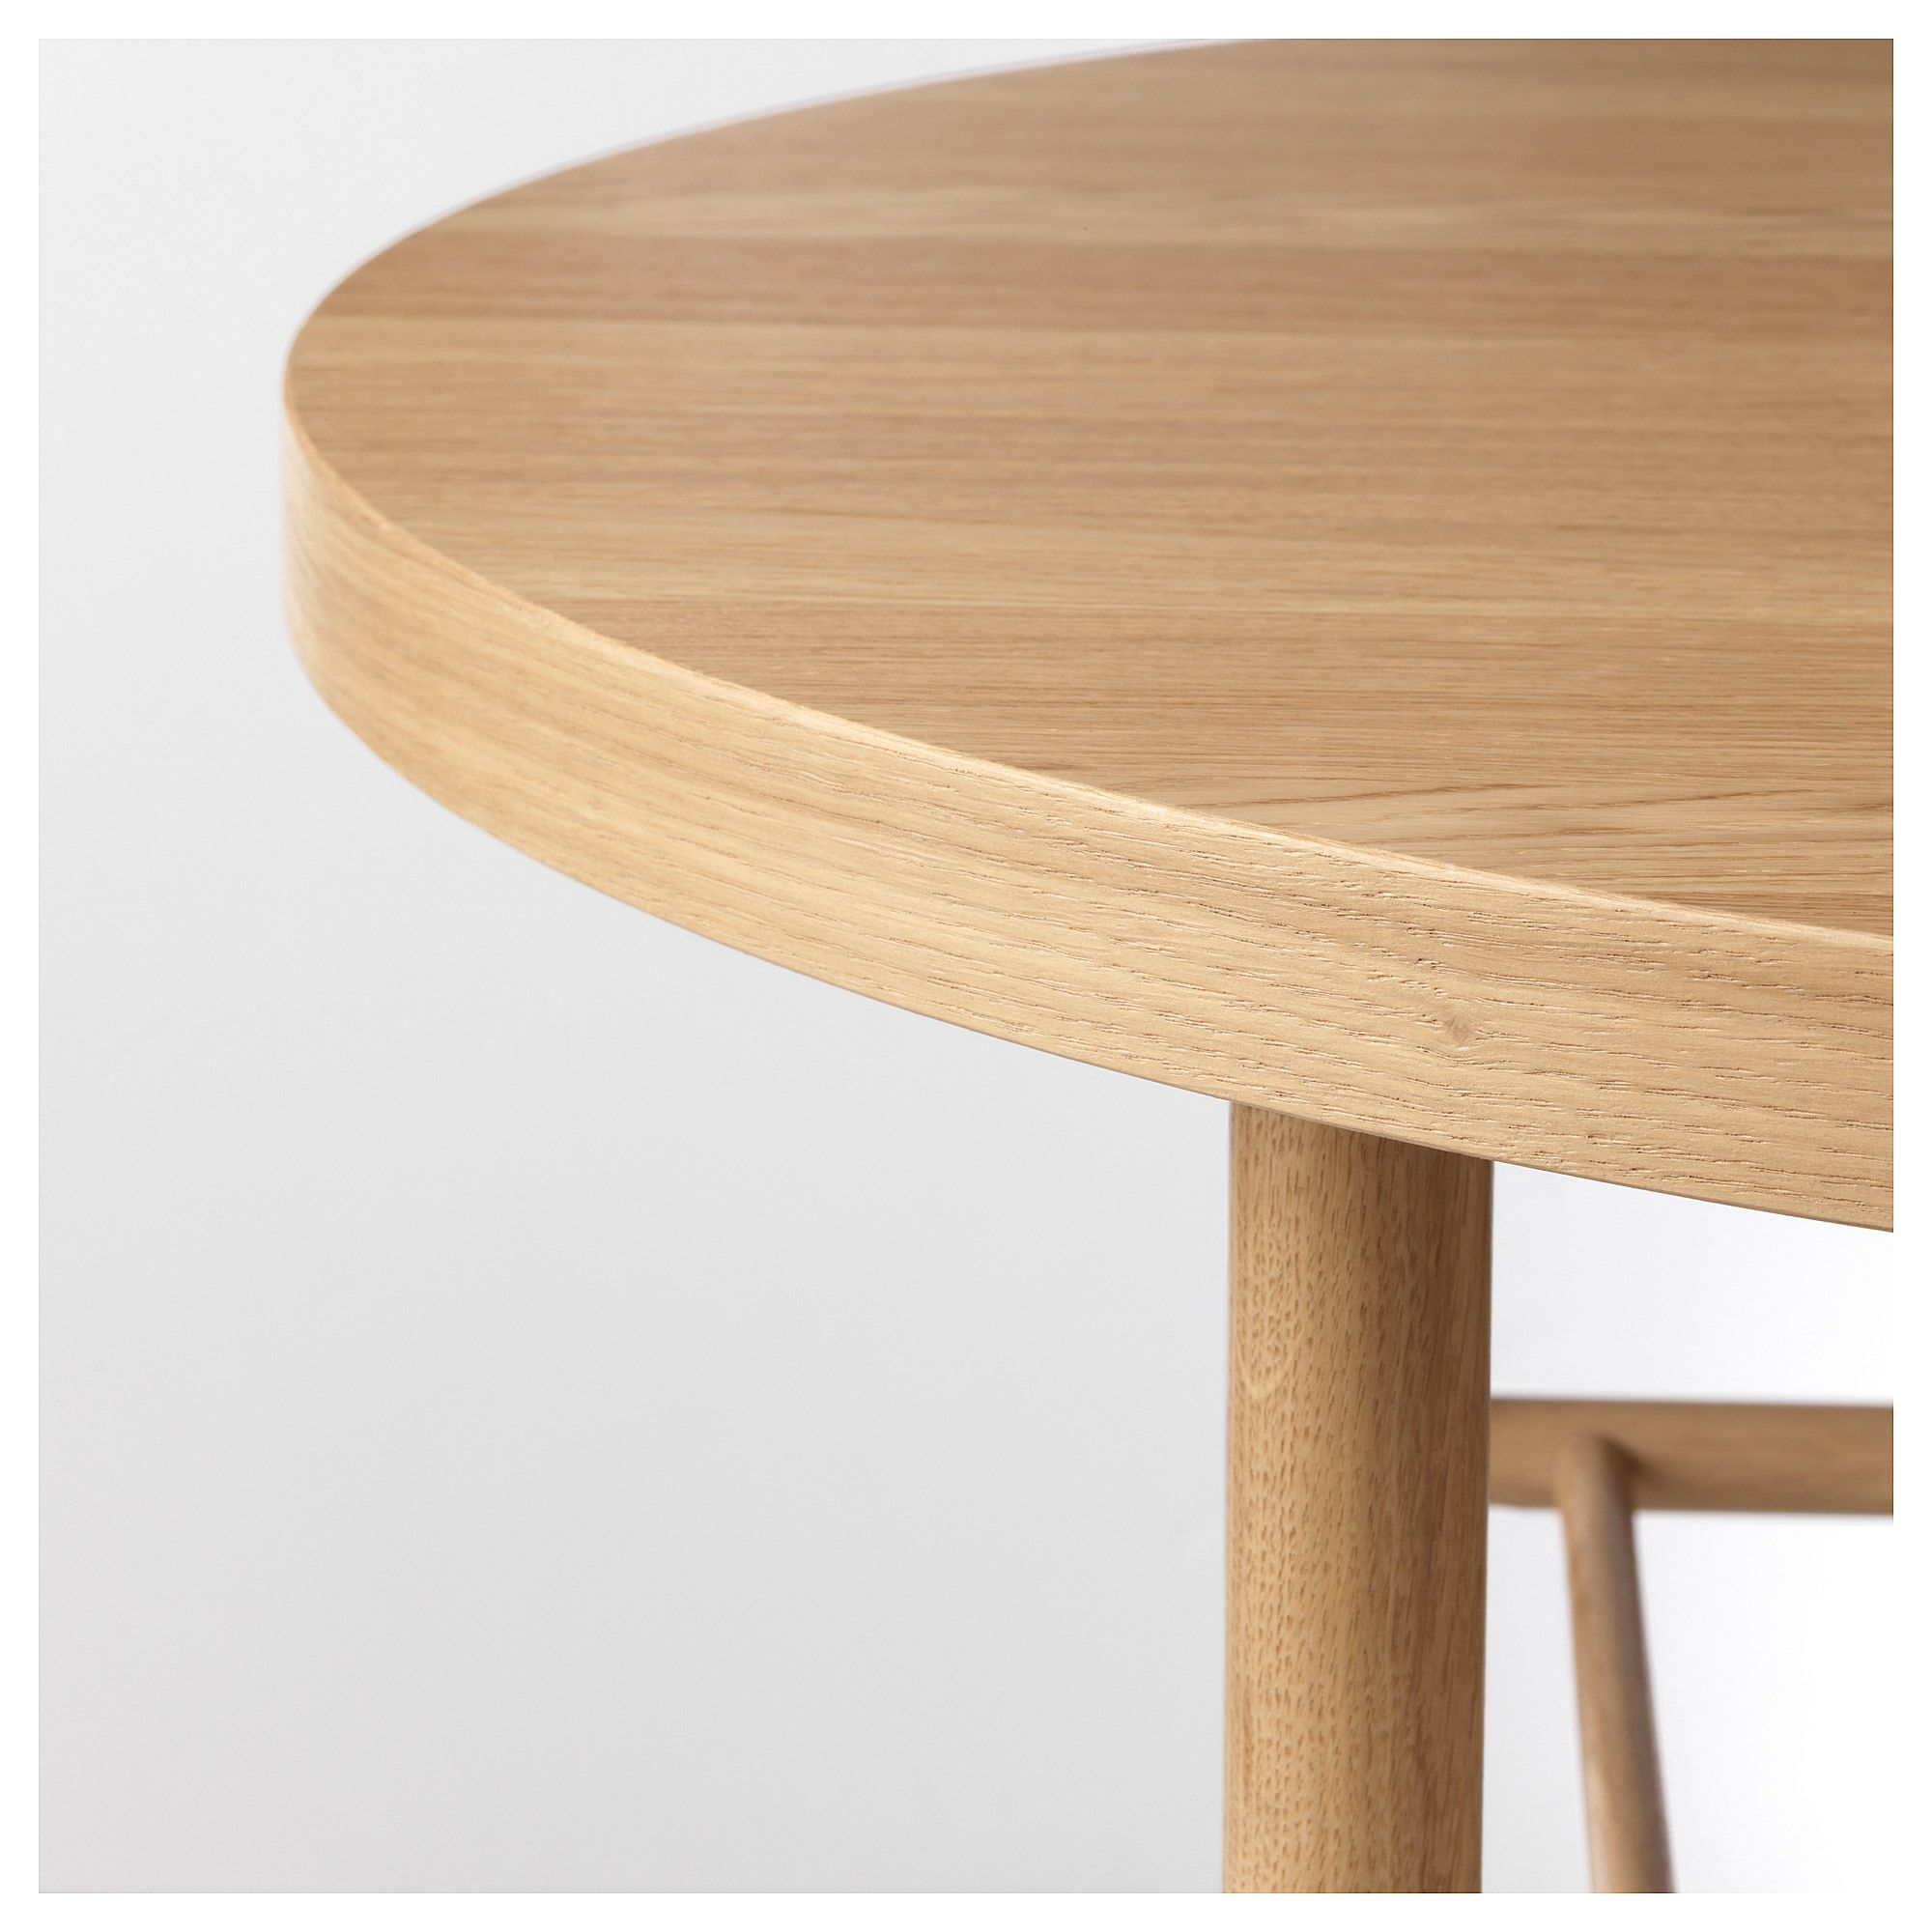 Tremendous Ikea Listerby White Stained Oak Coffee Table Products In Cjindustries Chair Design For Home Cjindustriesco